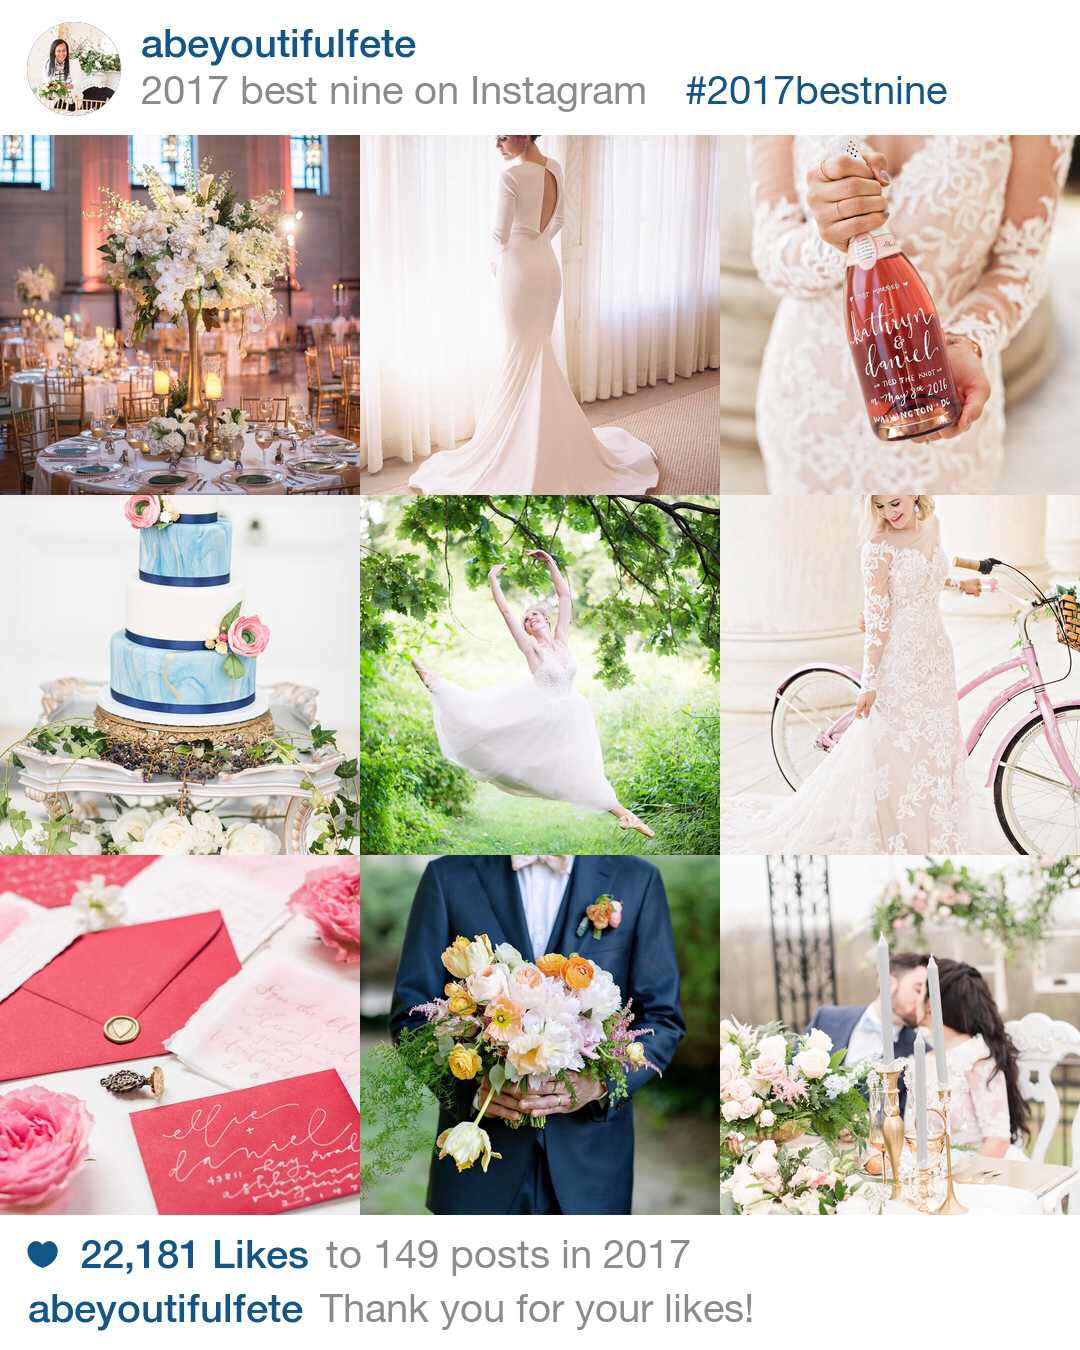 a beyoutiful fete event design - 2017 best nine instagram post - virginia -washington dc - charlosttesville - wedding planner.JPG